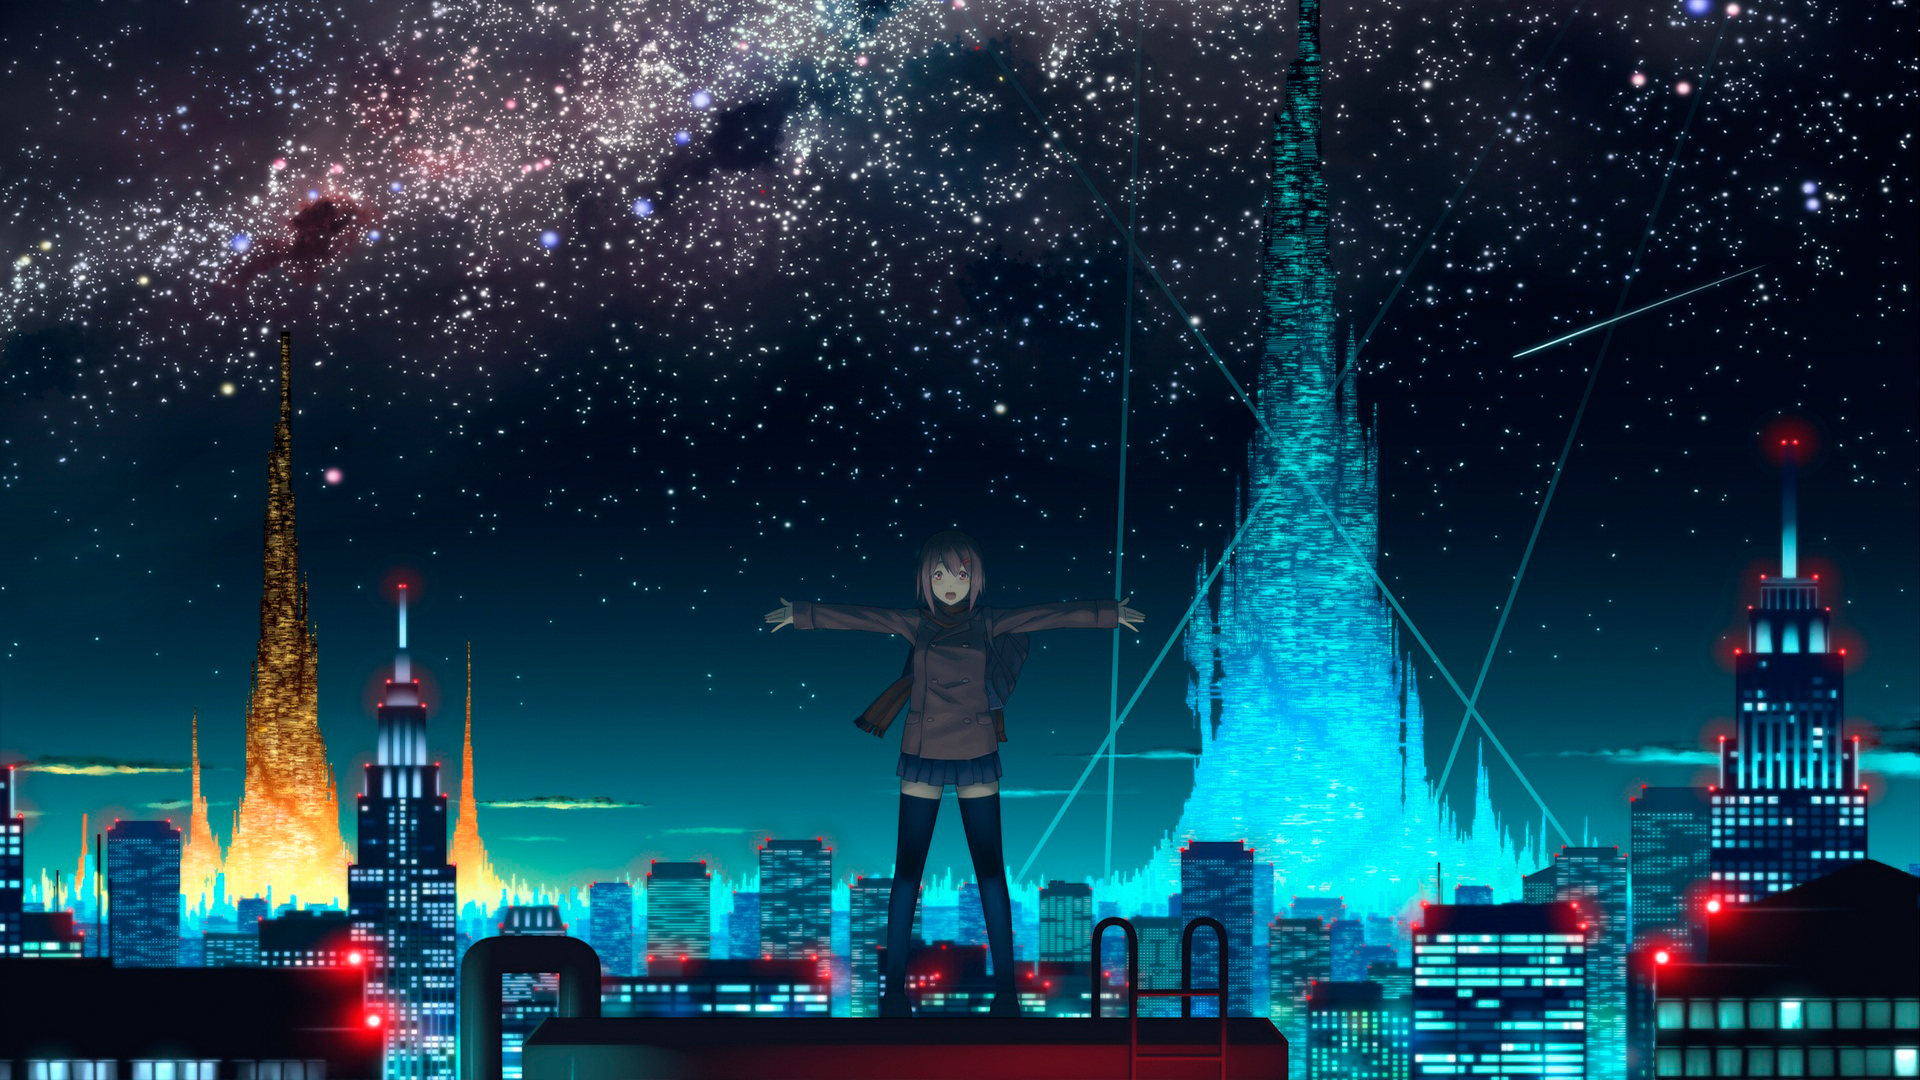 Old anime wallpapers full hd 040415 file indie db old anime wallpapers full hd 040415 voltagebd Images